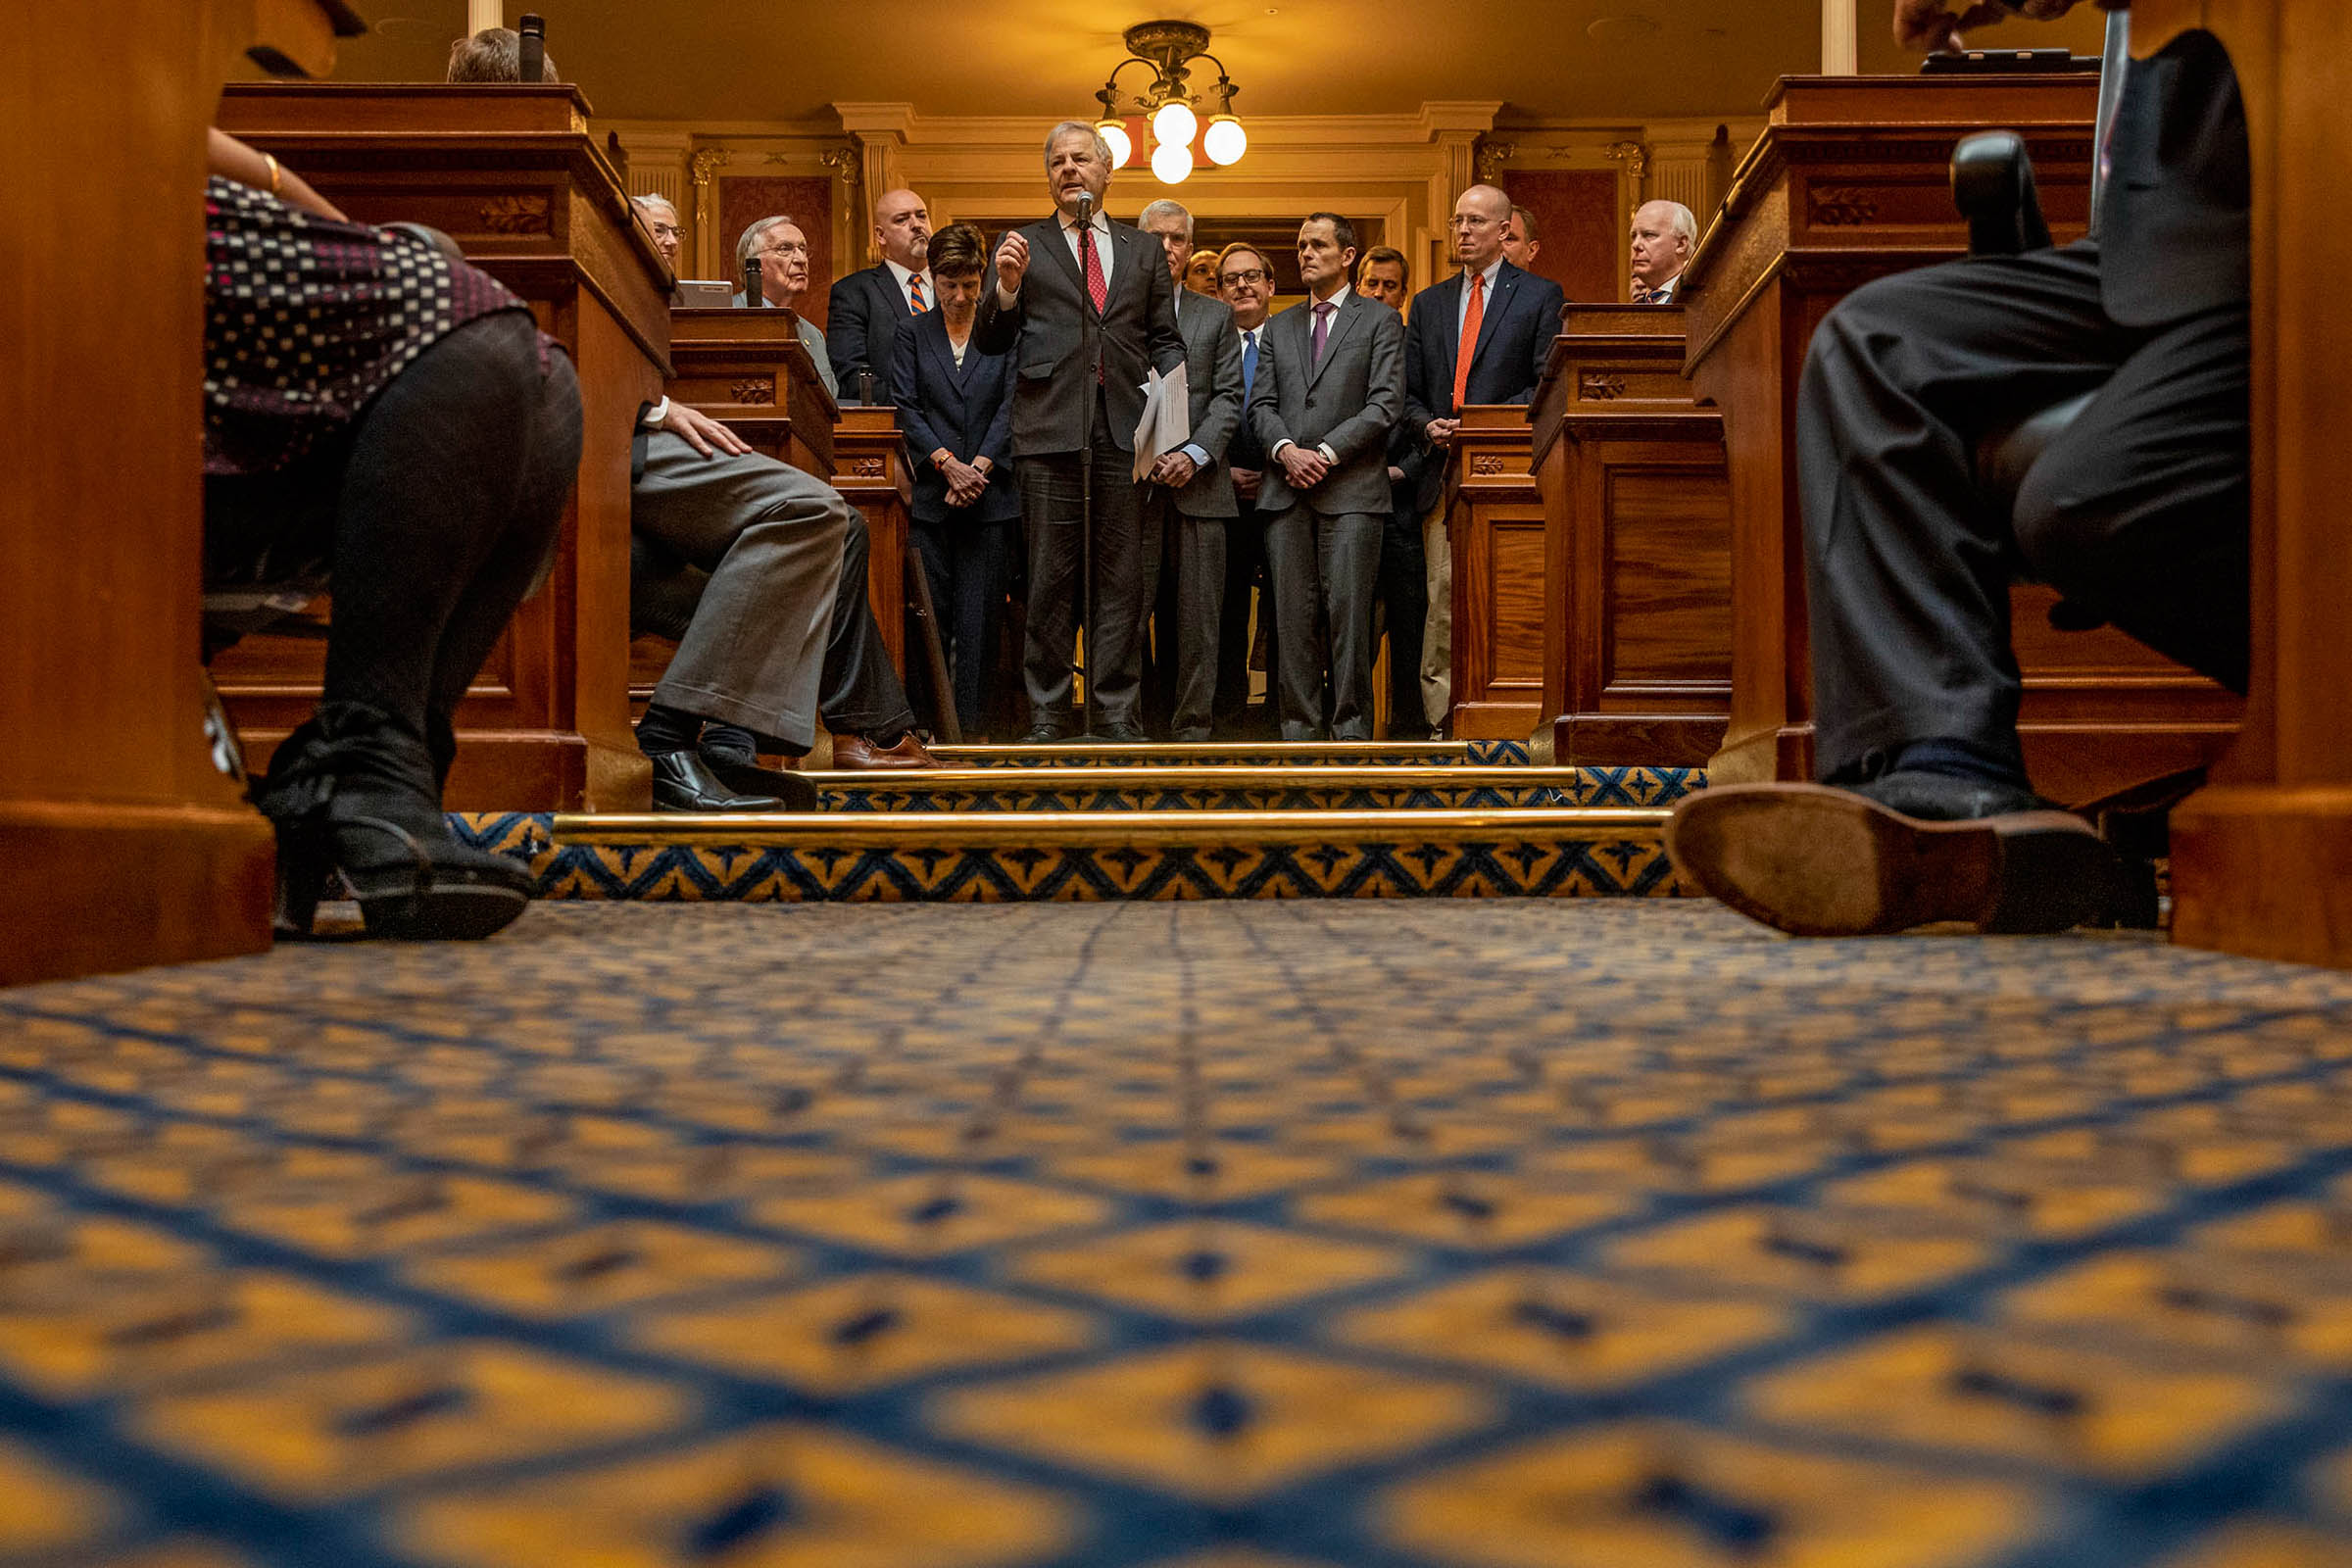 Resolutions, ceremonies and presentations are all part of the day-to-day for any photographer. Often, we try to find something interesting in the mundane. When state Del. David Toscano presented a resolution marking UVA's bicentennial on the State House f